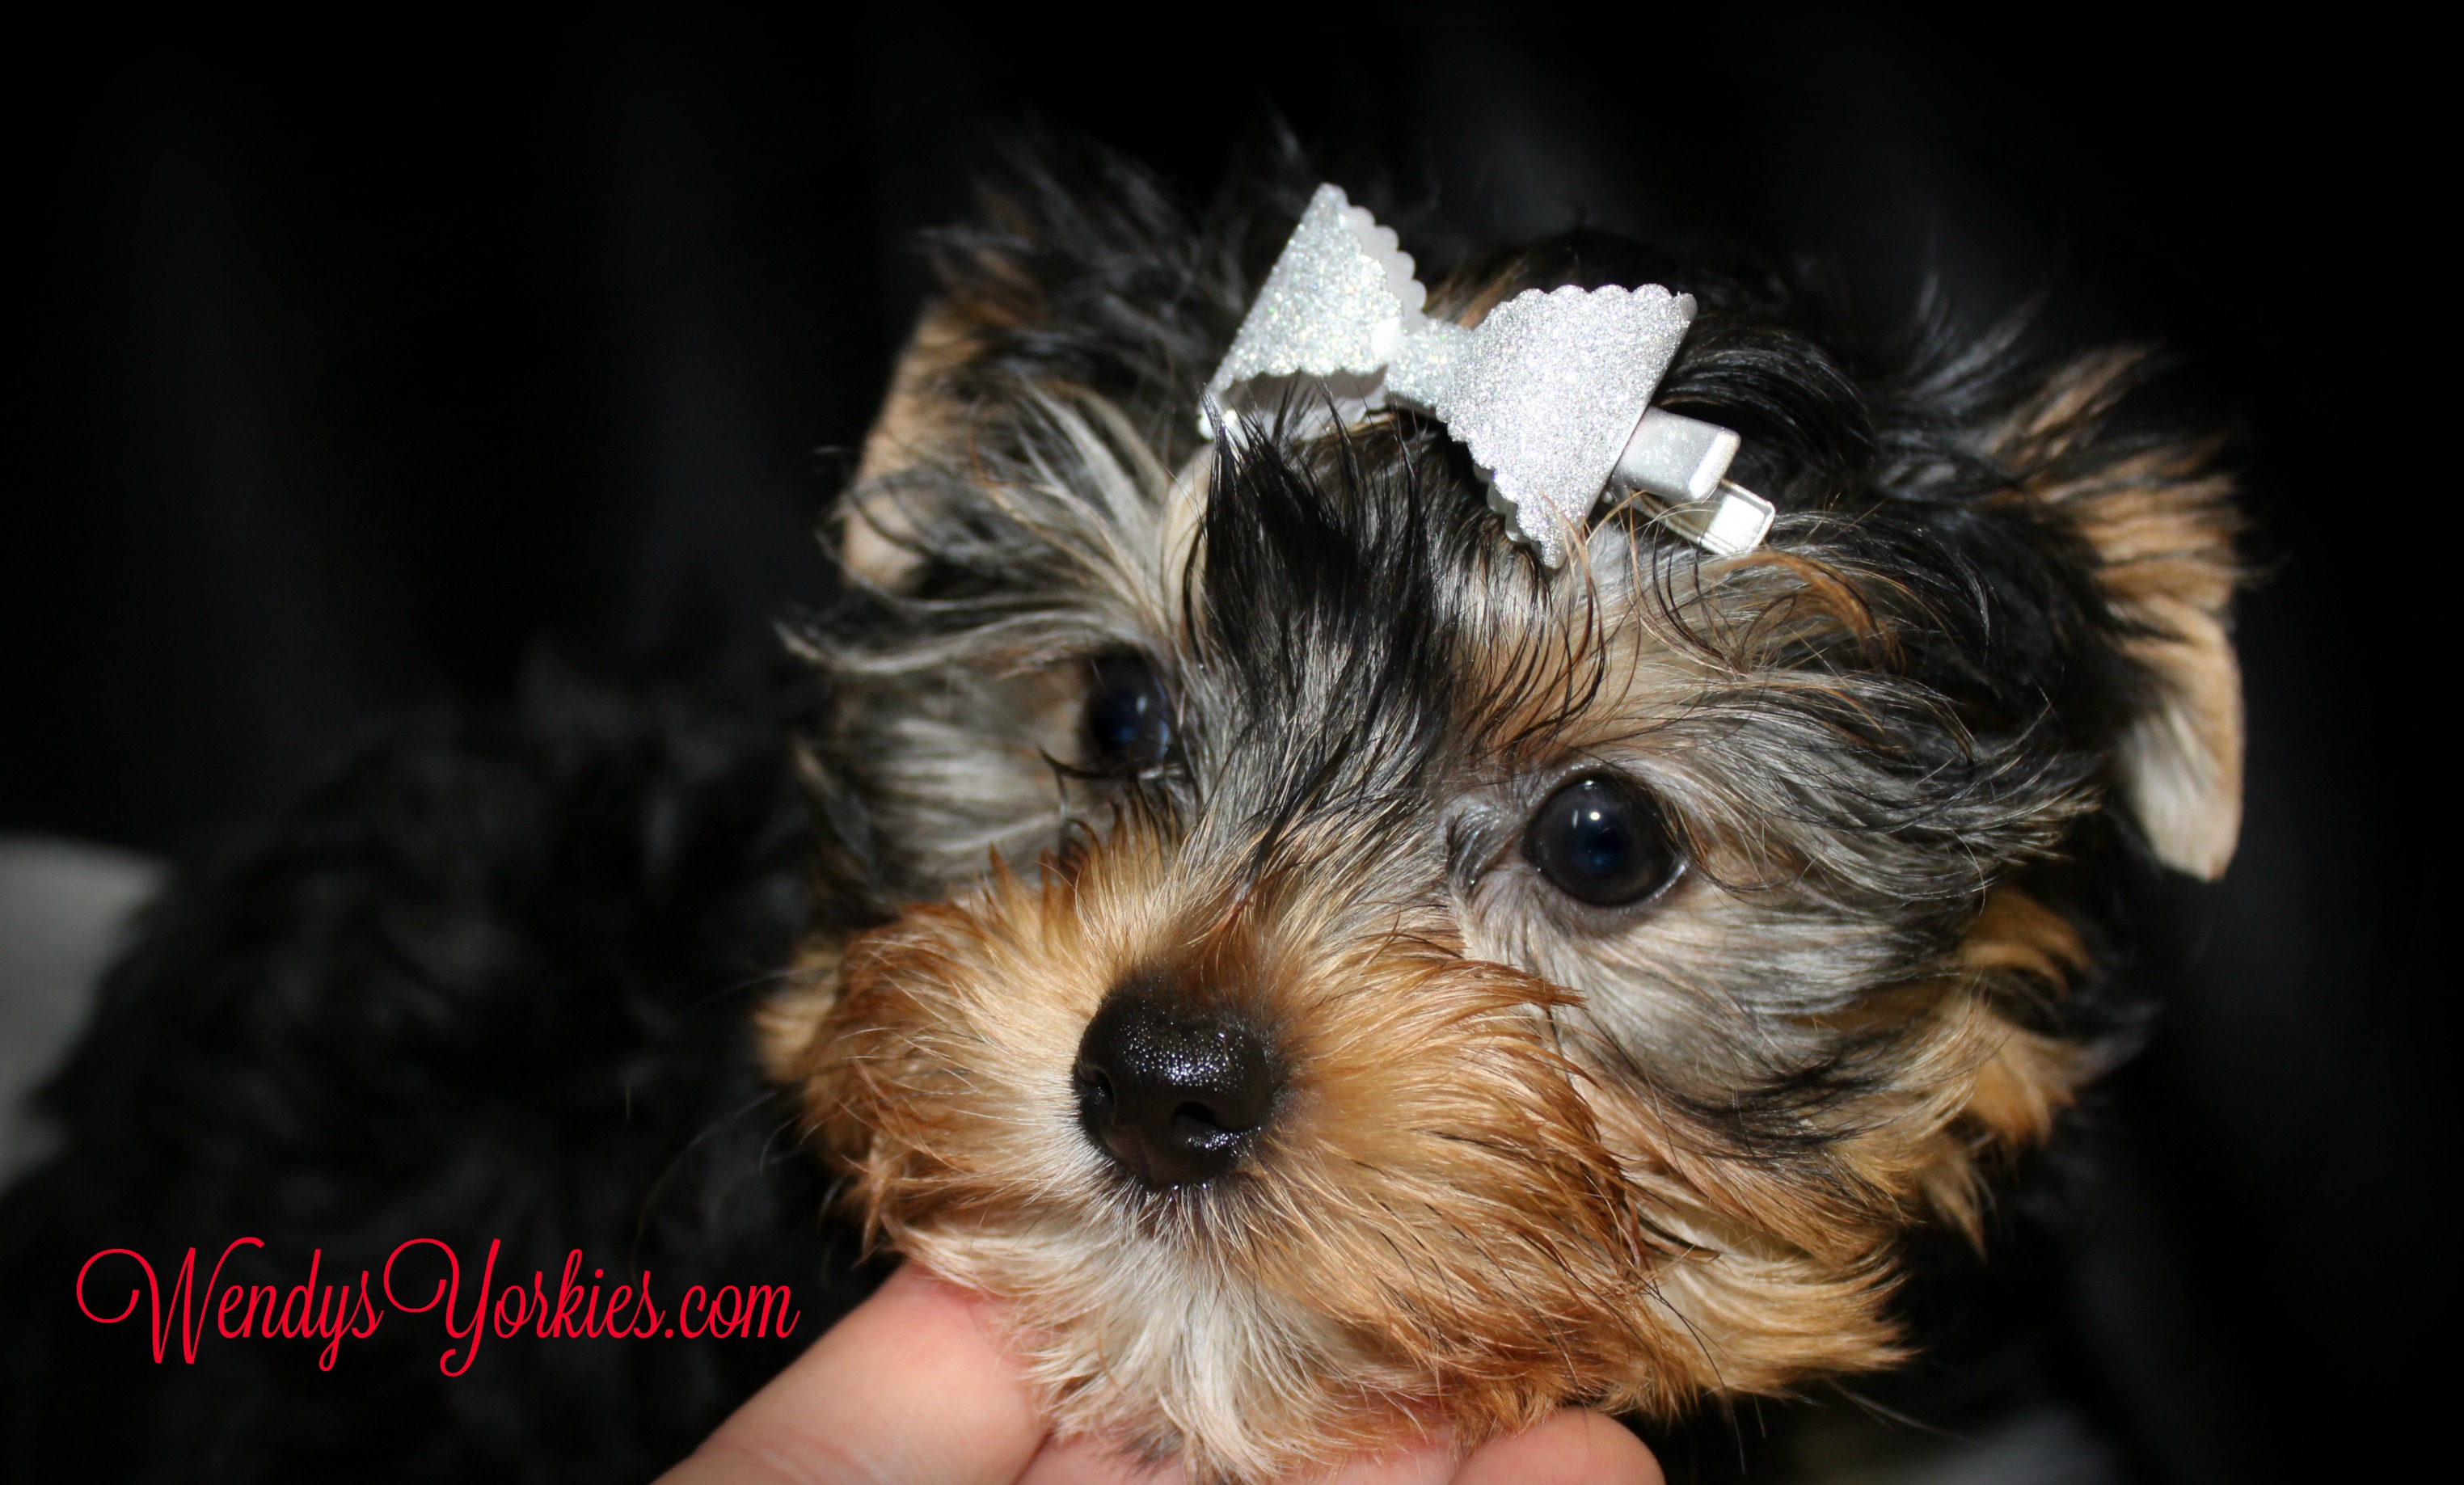 Male Yorkie puppy for sale, WendysYorkies.com, Lexie t m1